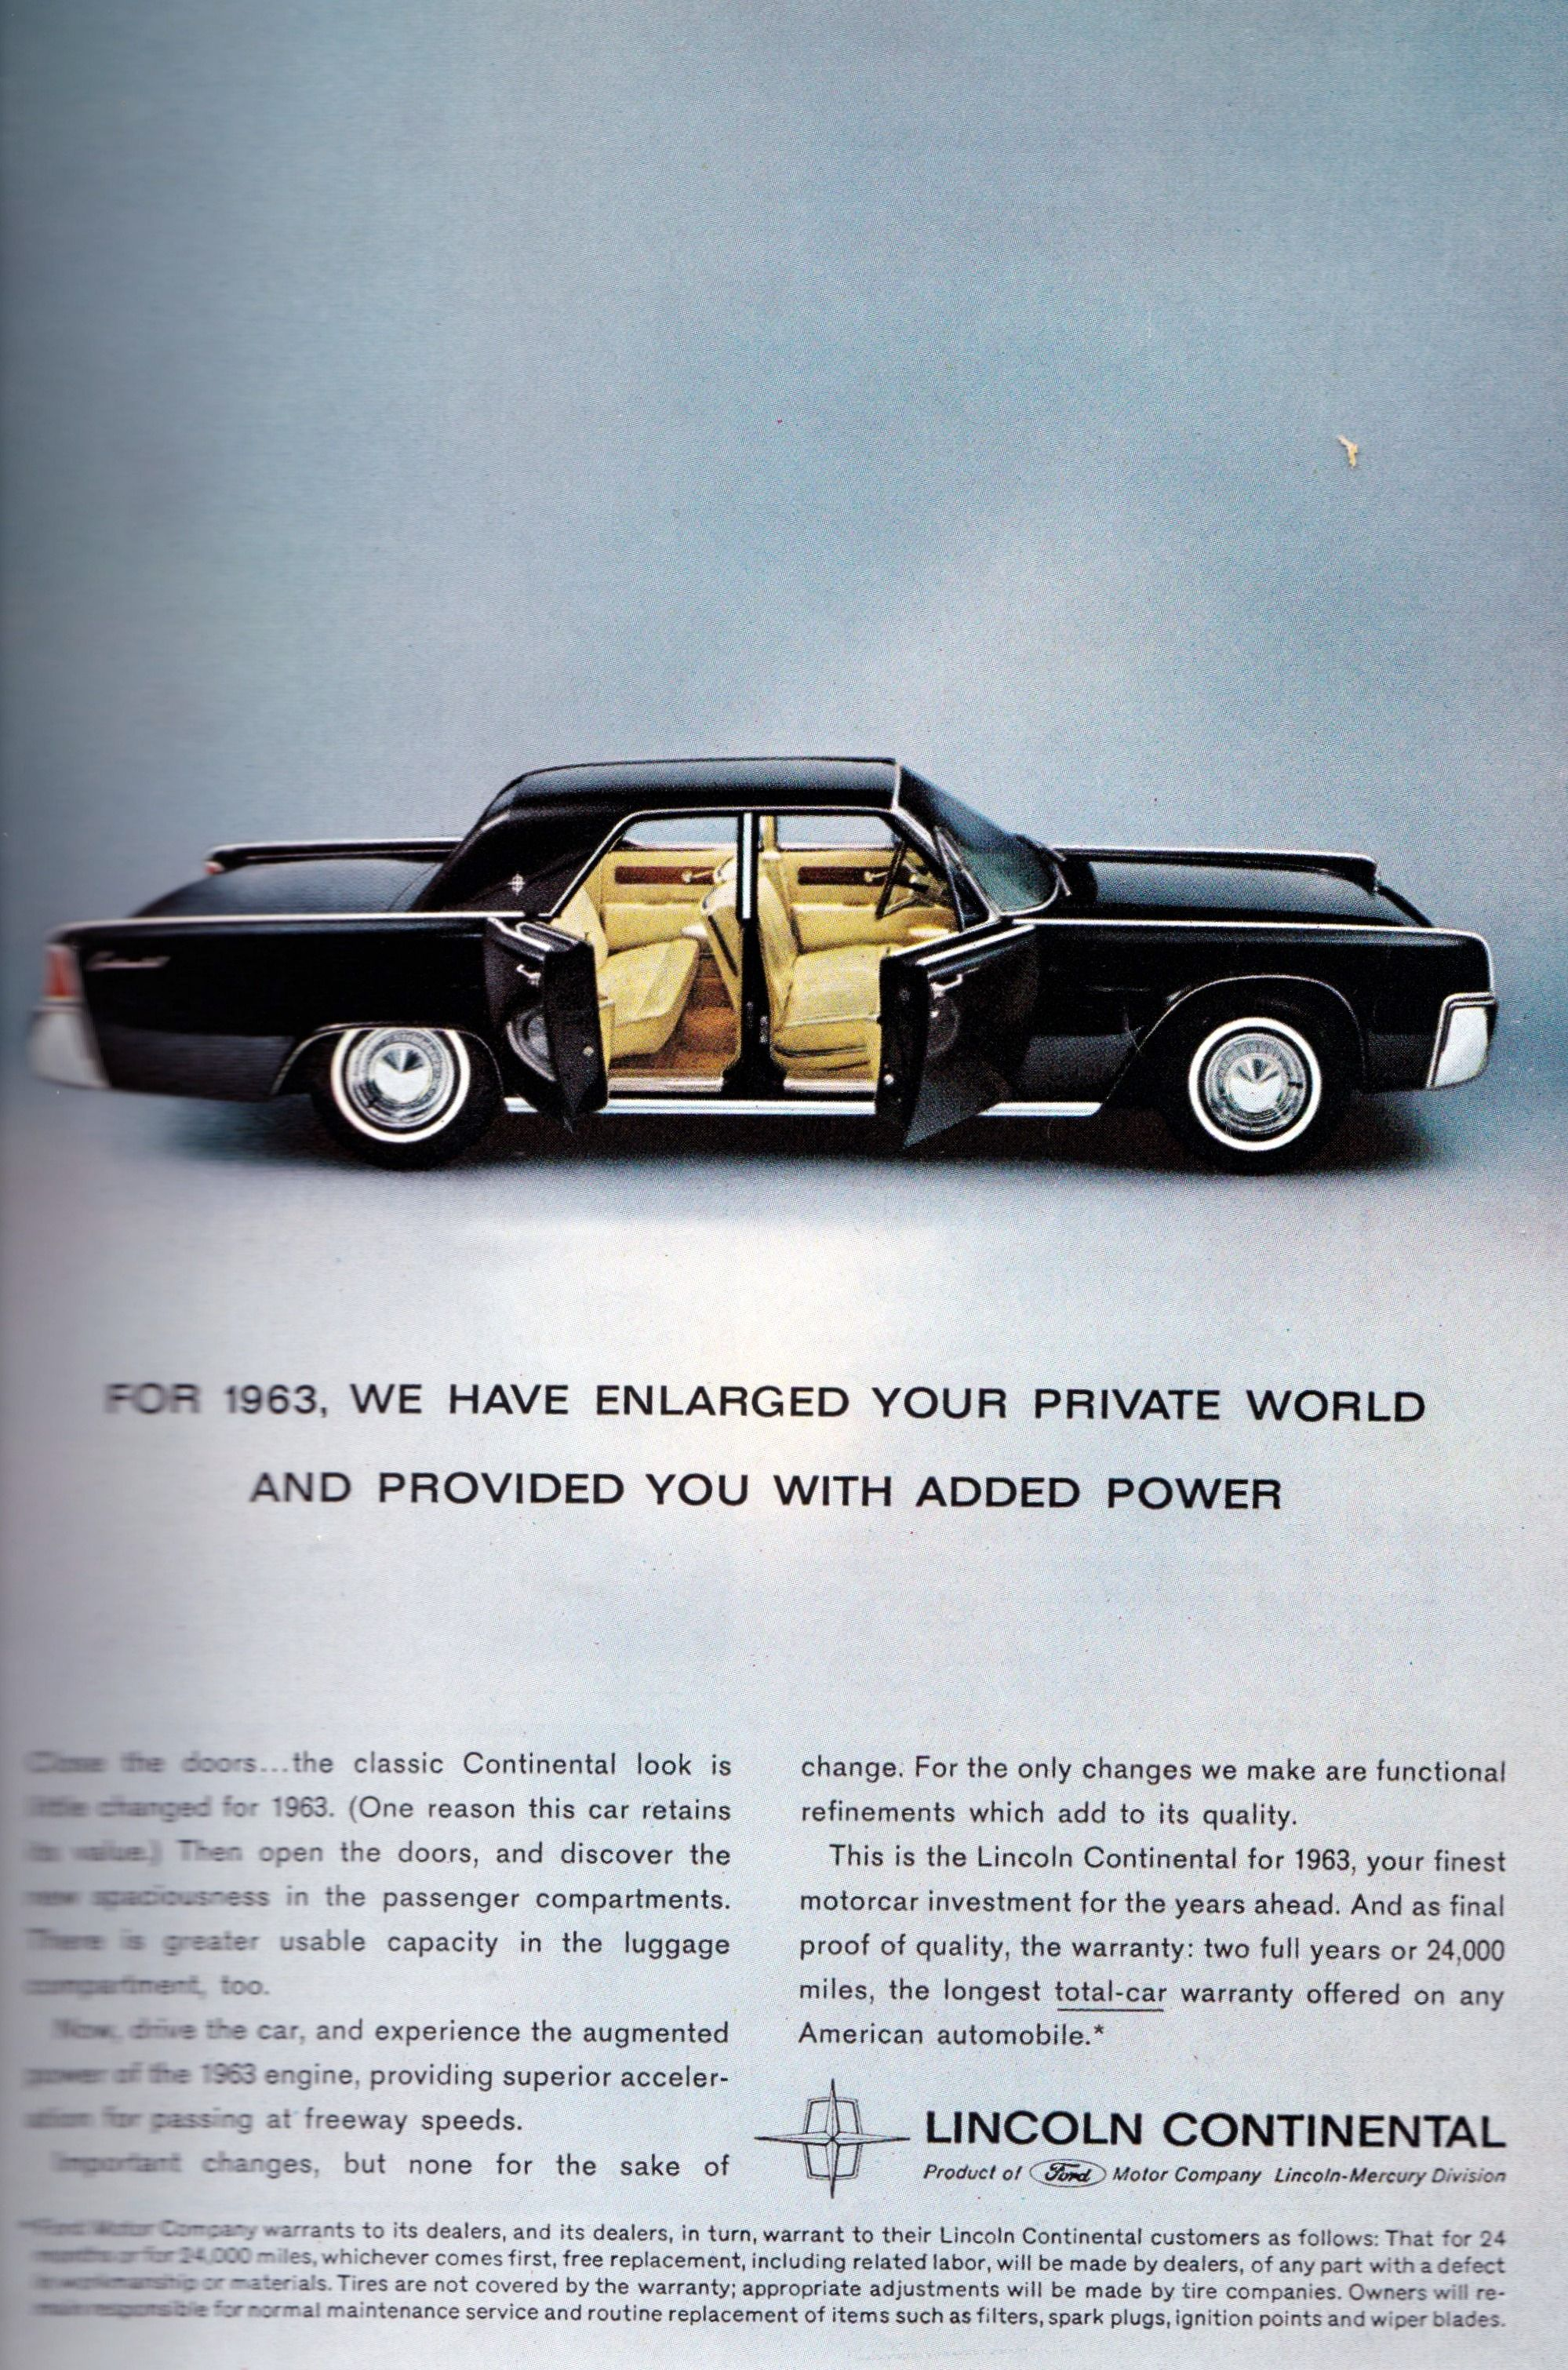 1963 Lincoln Continental Vintage Ads 1950s 1970s In 2018 Cars